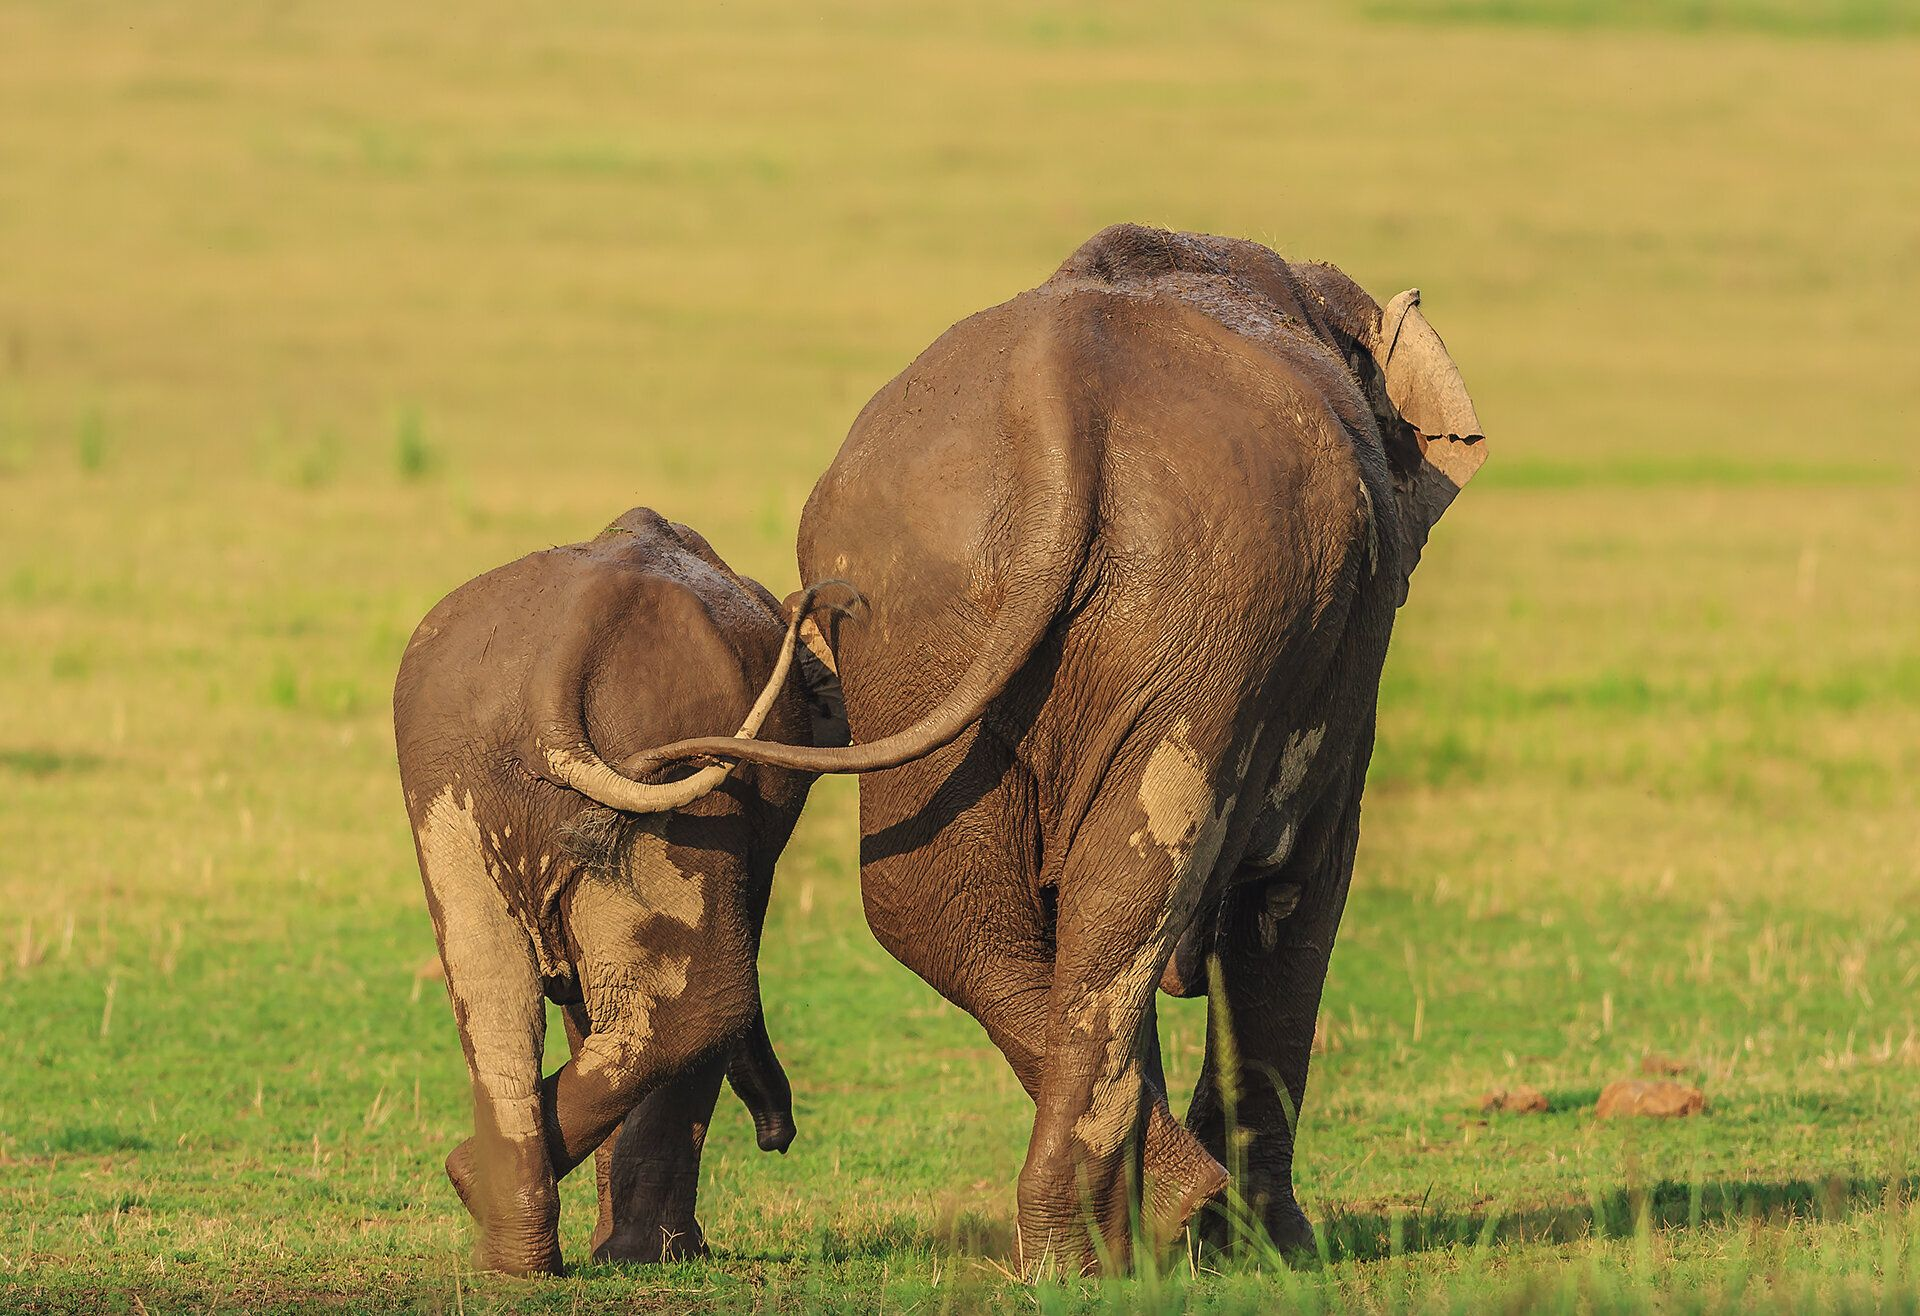 """Like Mother Like Daughter"" features two Asian elephants at Corbett National Park in India."